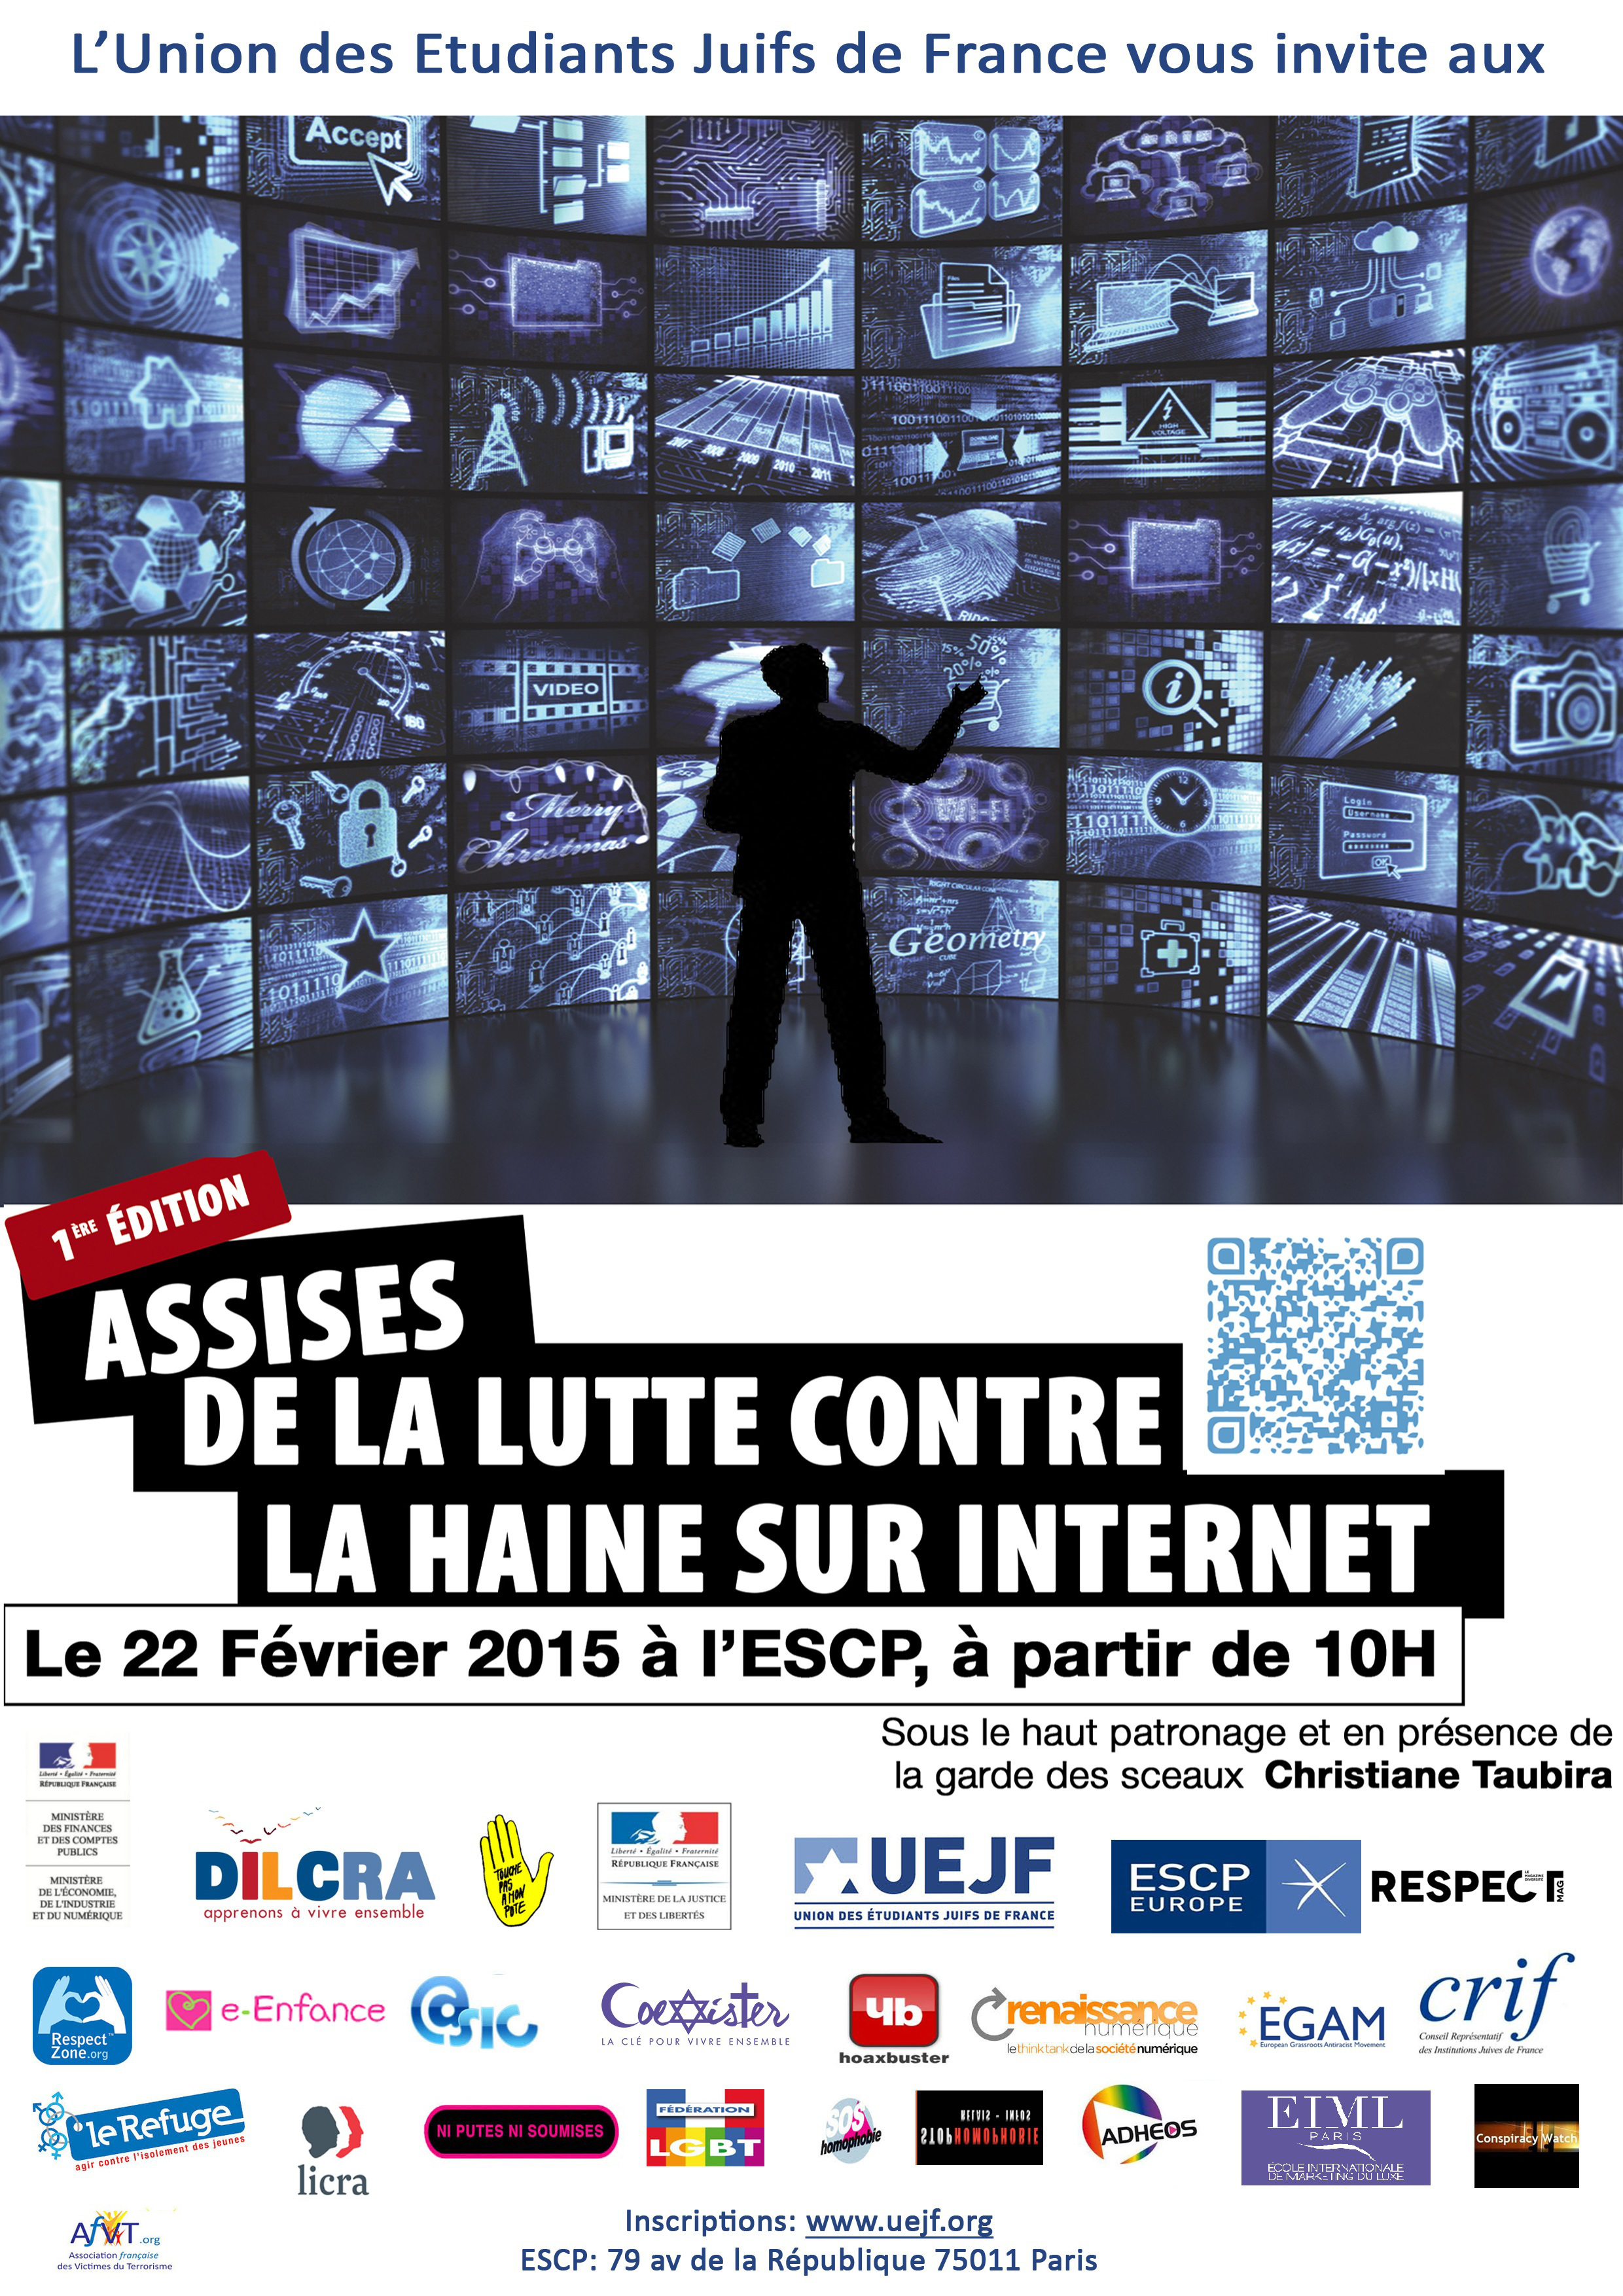 uejf-ASSISES-Affiche